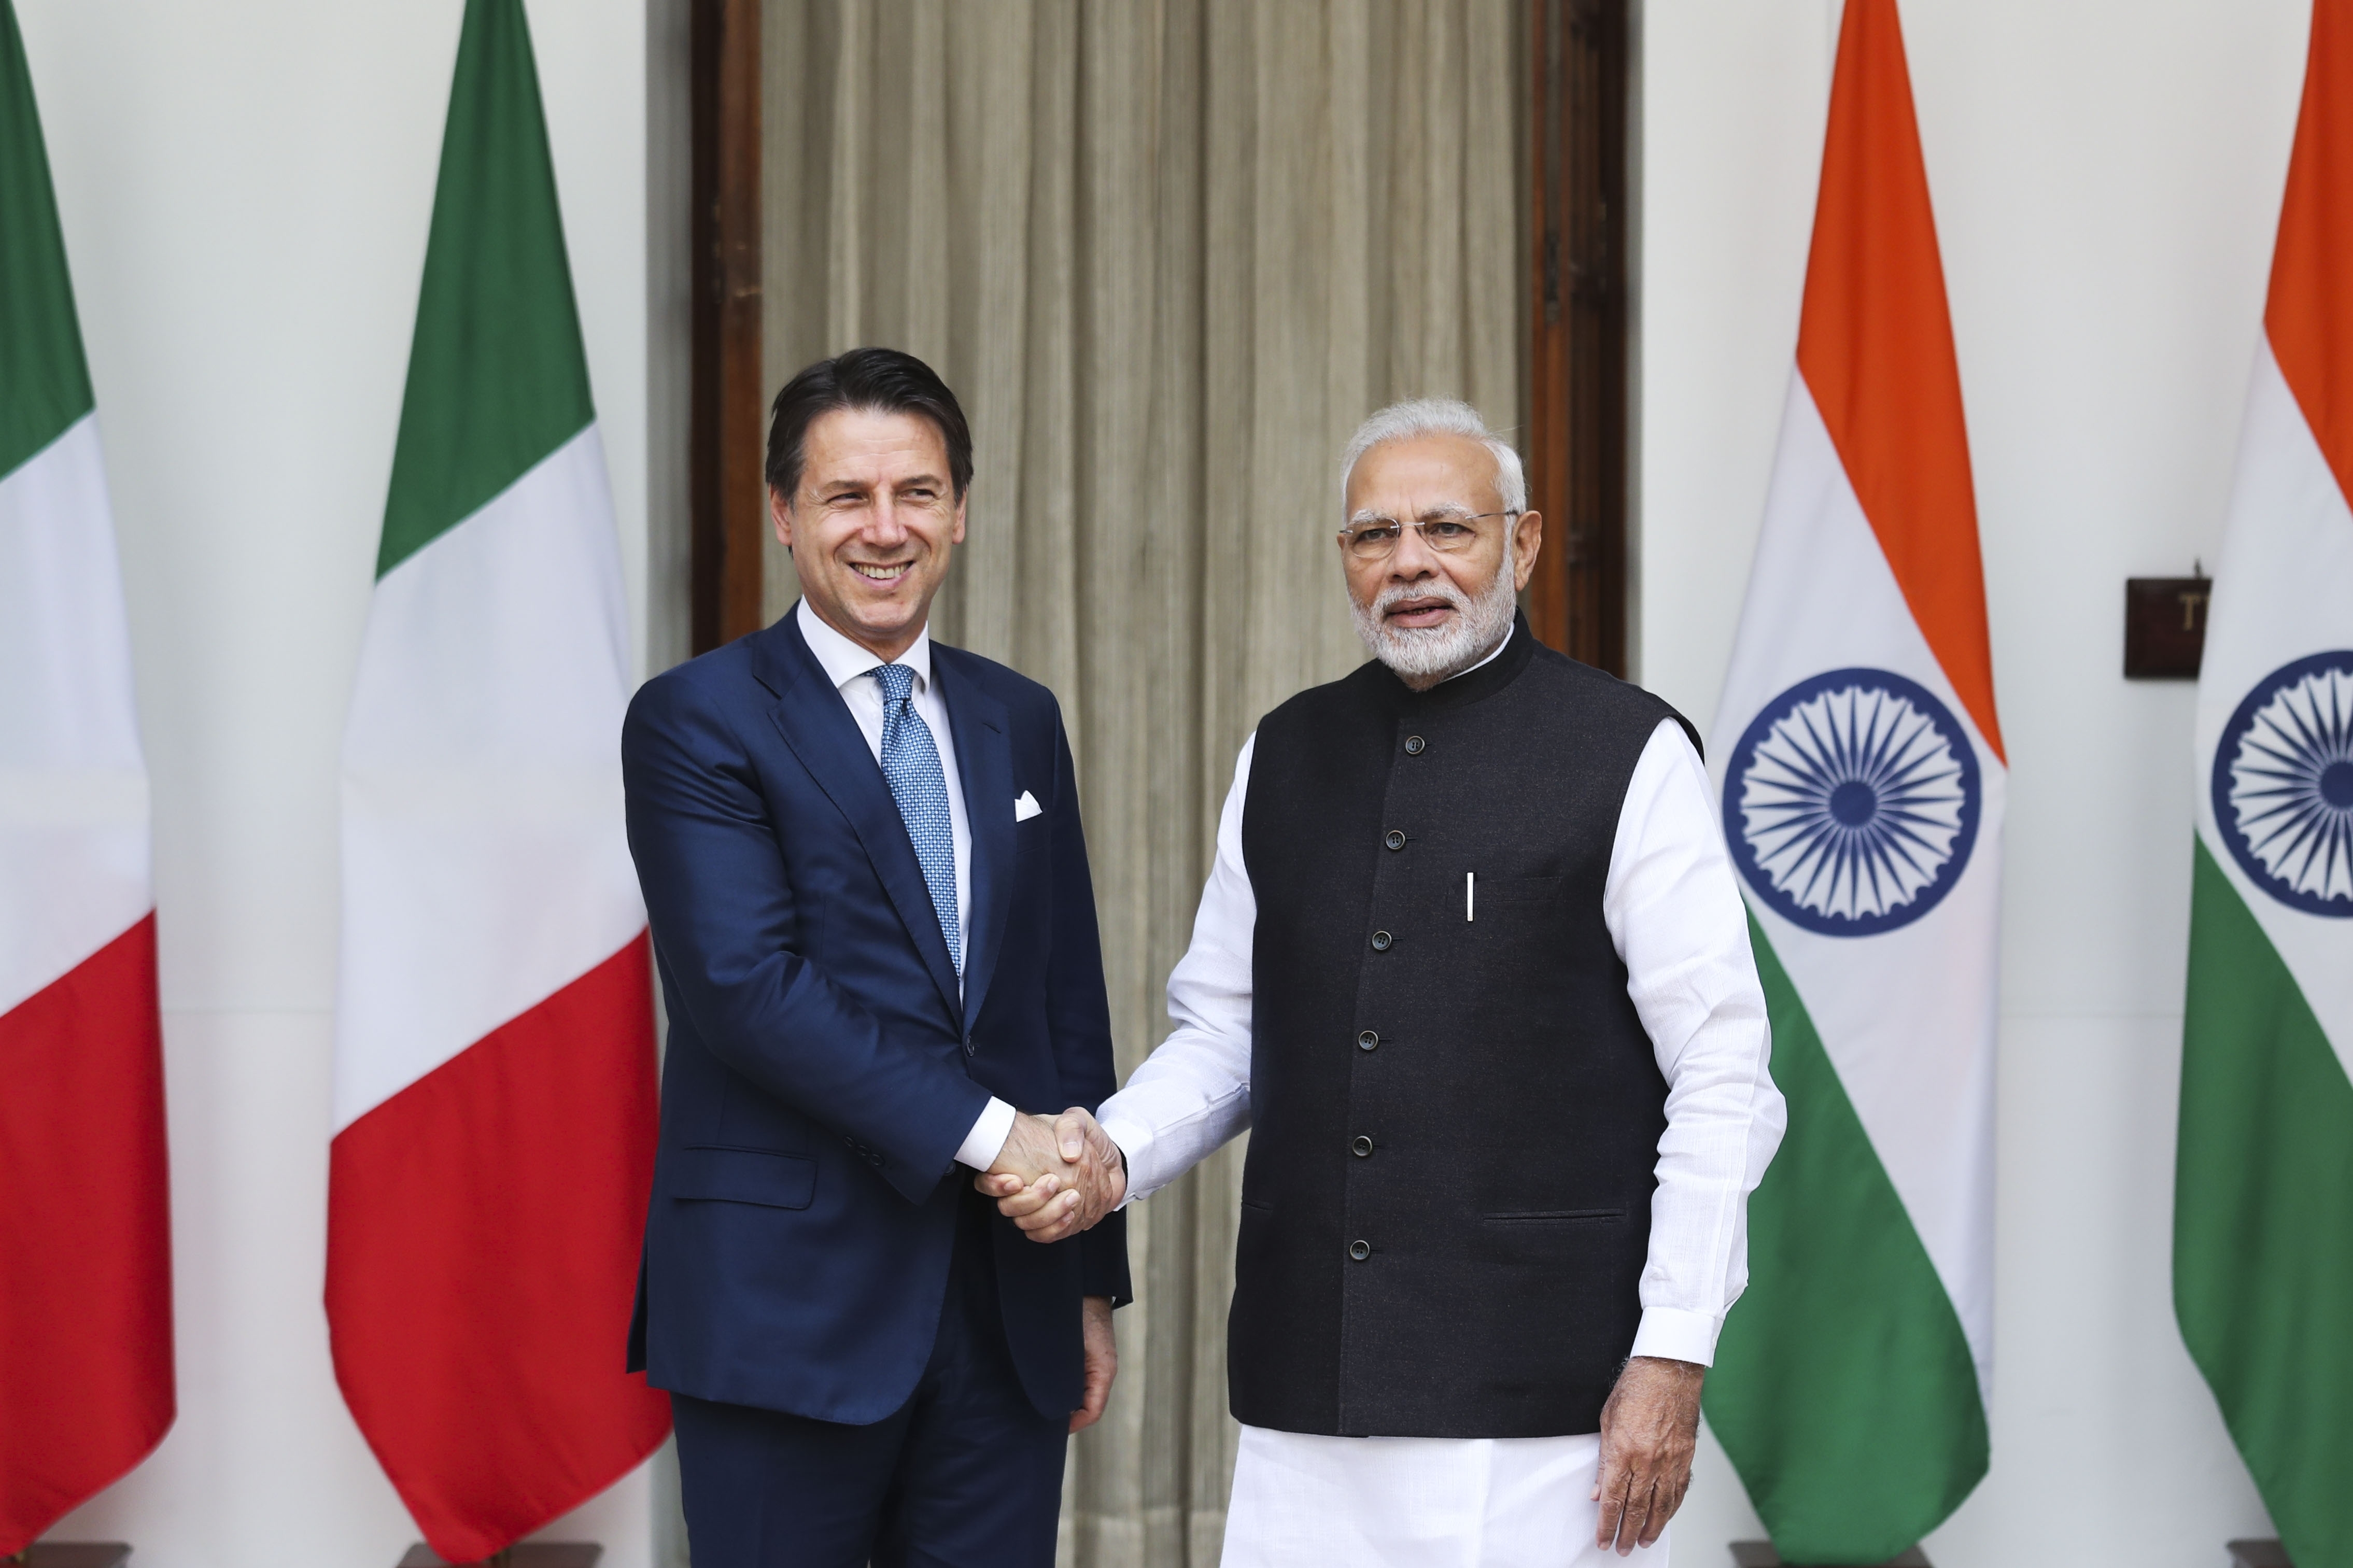 Indian Prime Minister Narendra Modi, right, shakes hands with Italian Prime Minister Giuseppe Conte before their meeting in New Delhi - AP